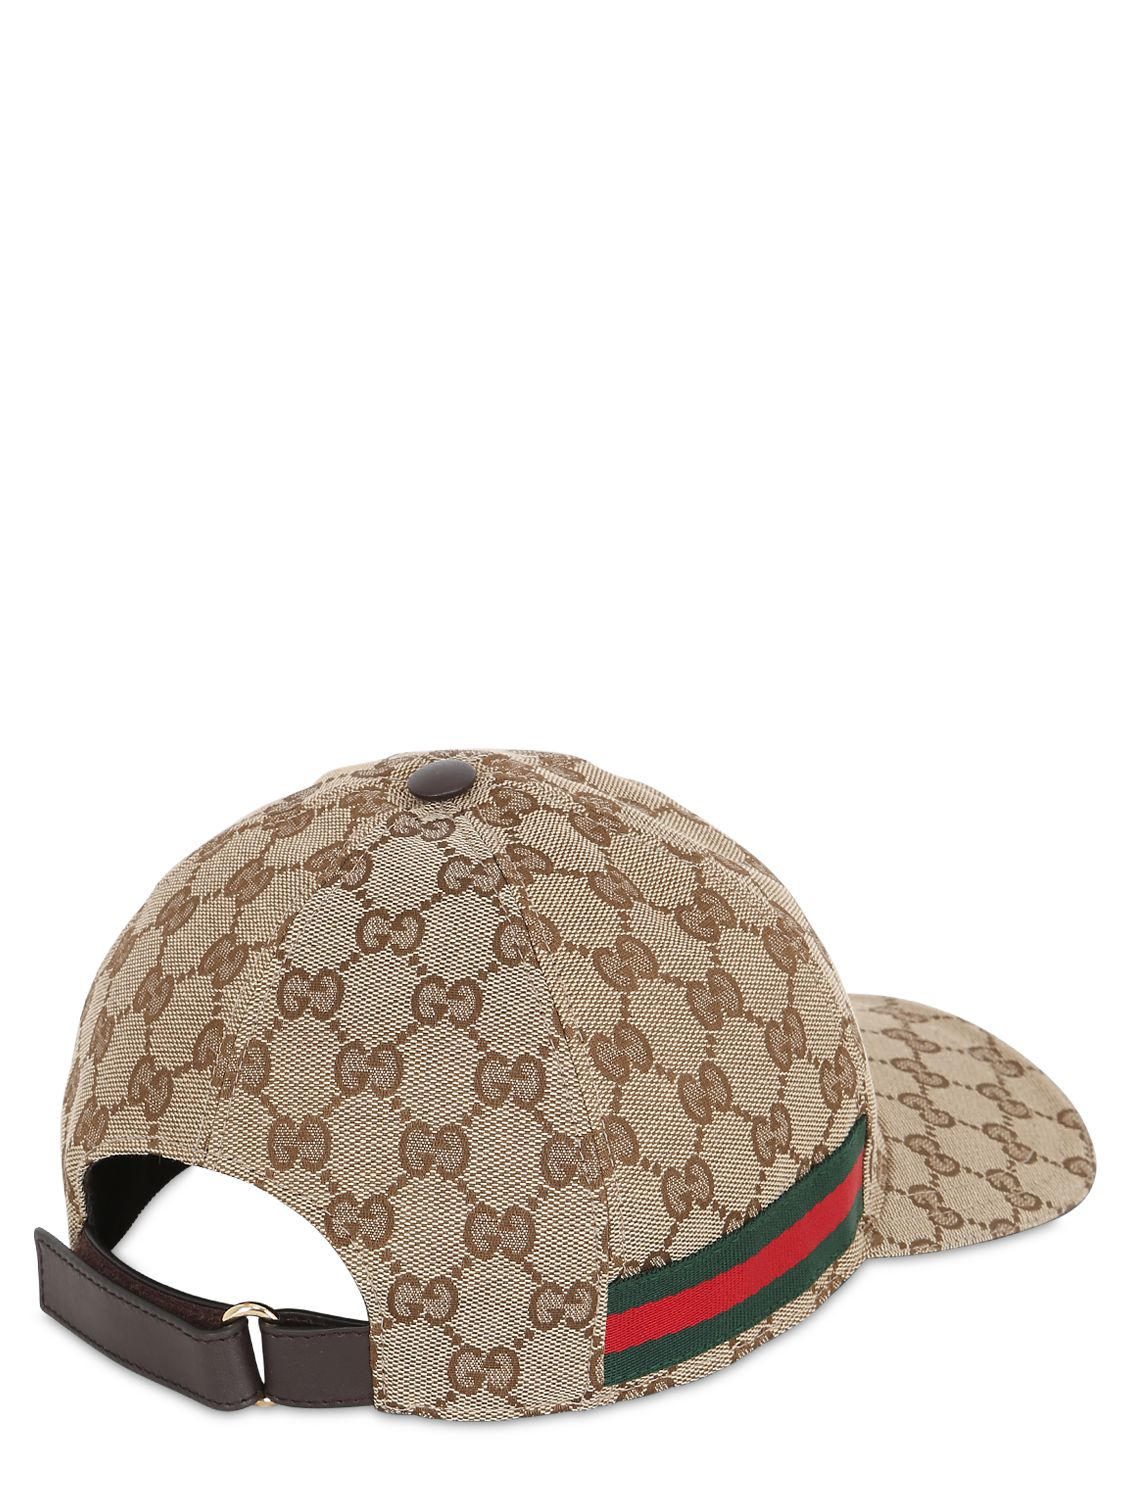 Gucci Hats For Sale Cheap 7d6e62b4393